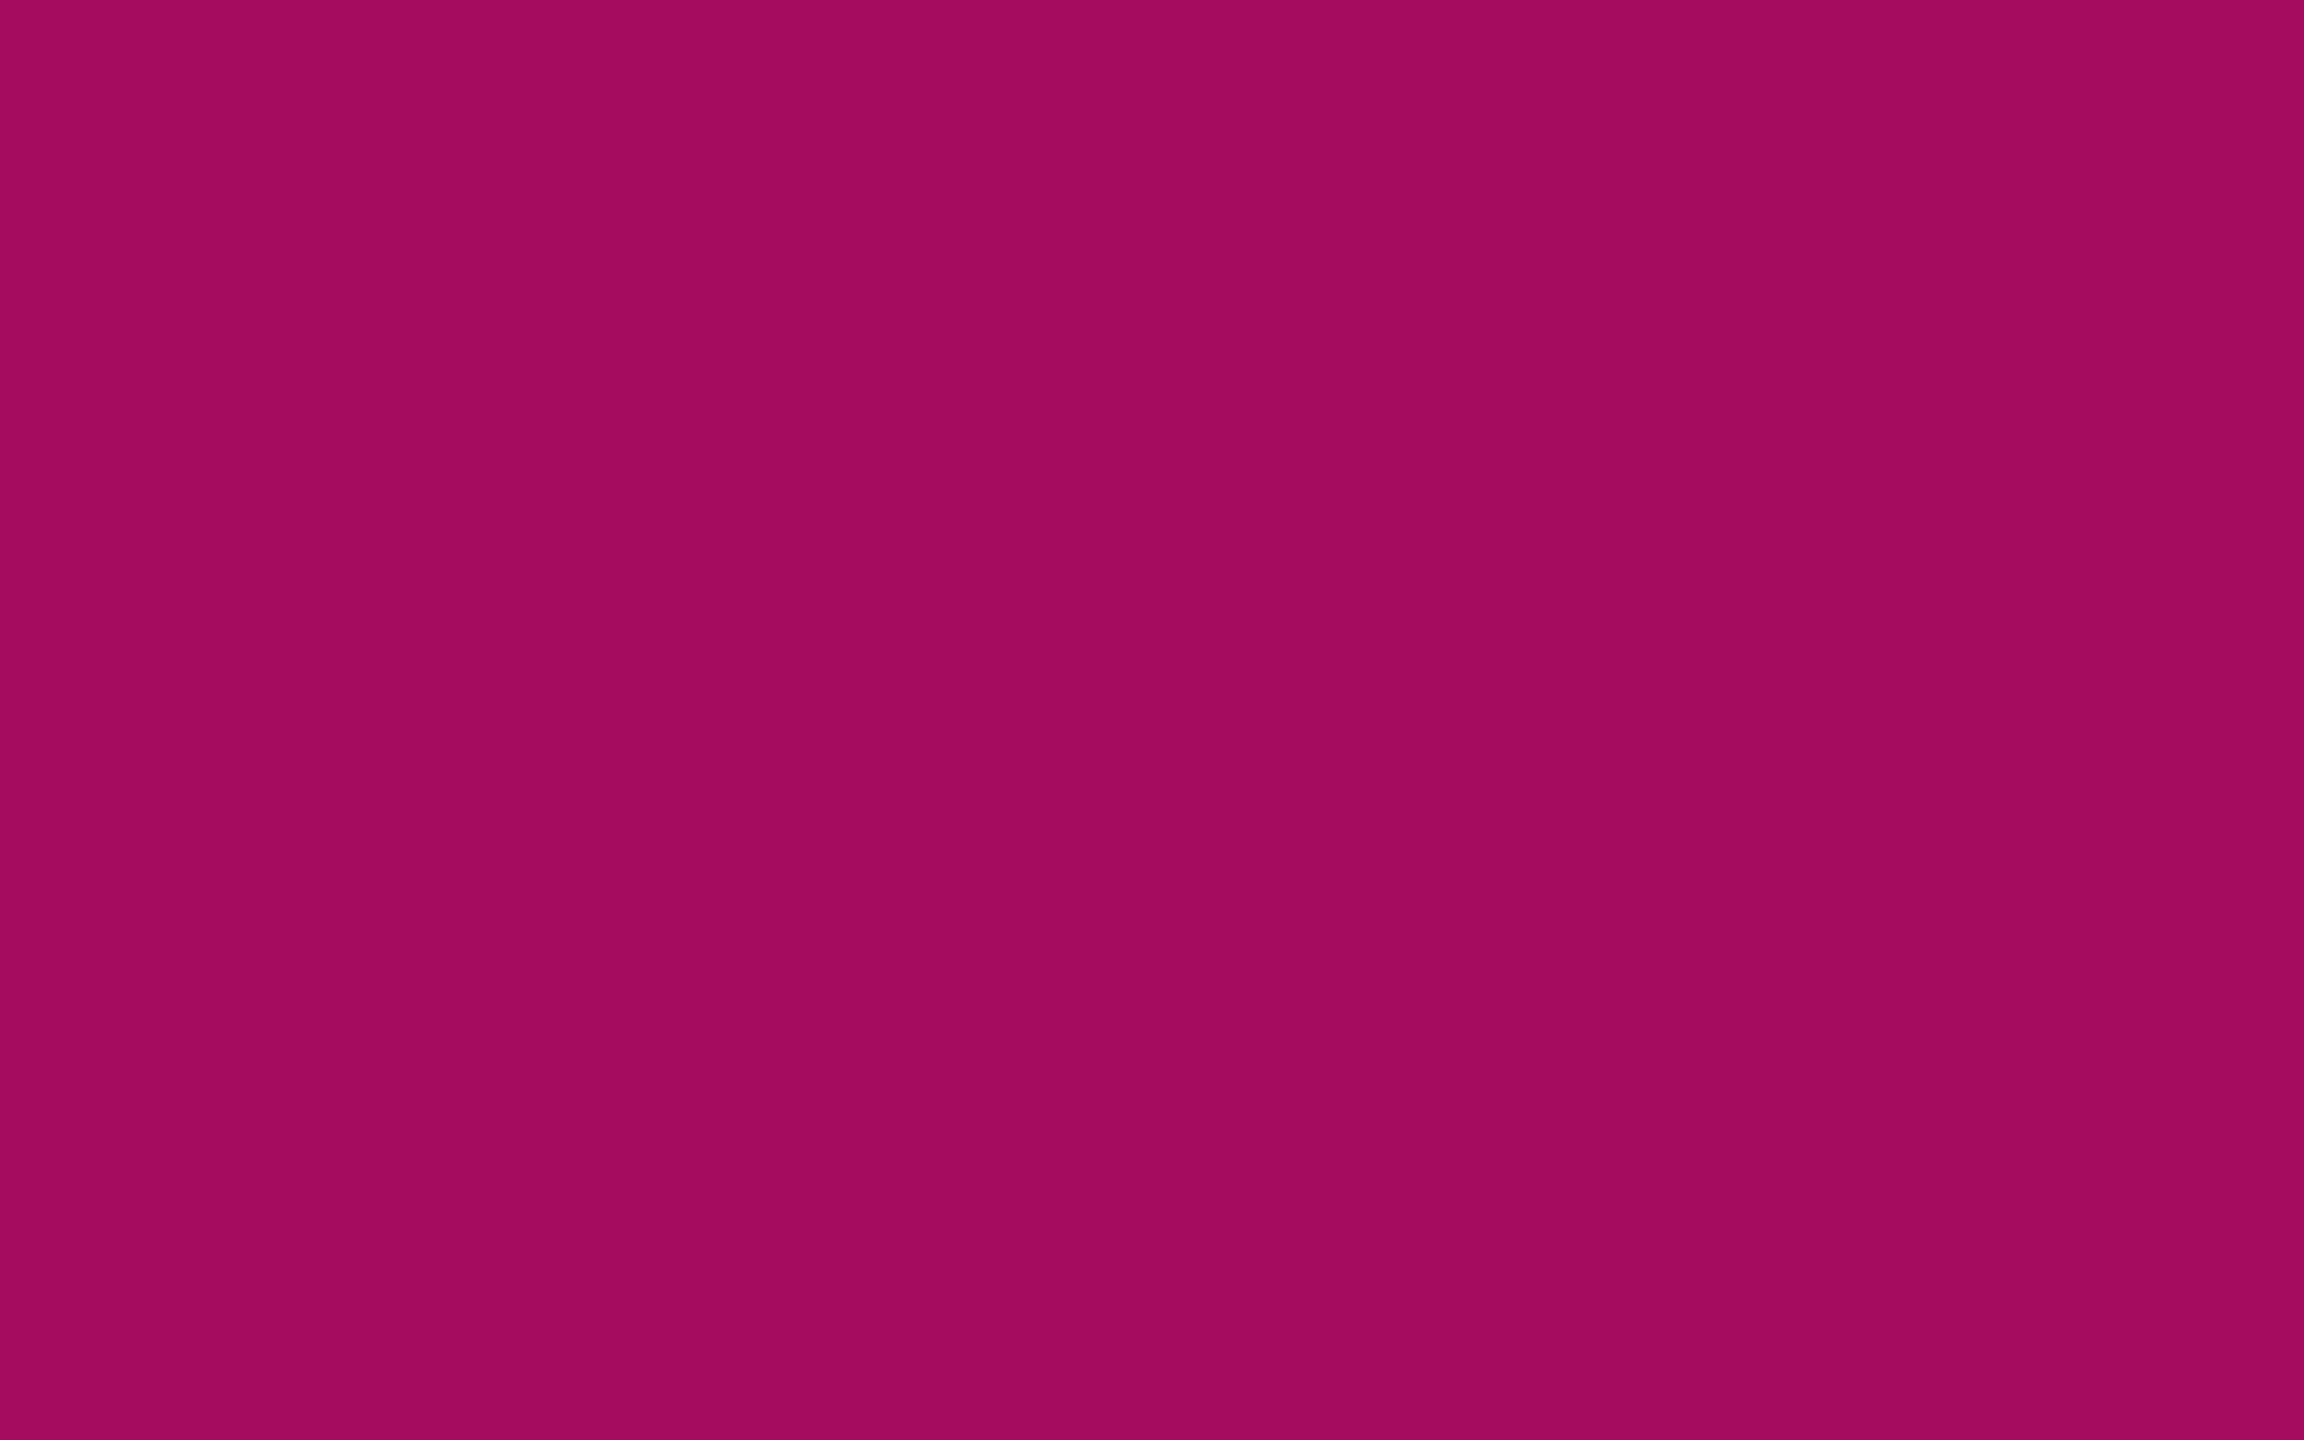 2304x1440 Jazzberry Jam Solid Color Background